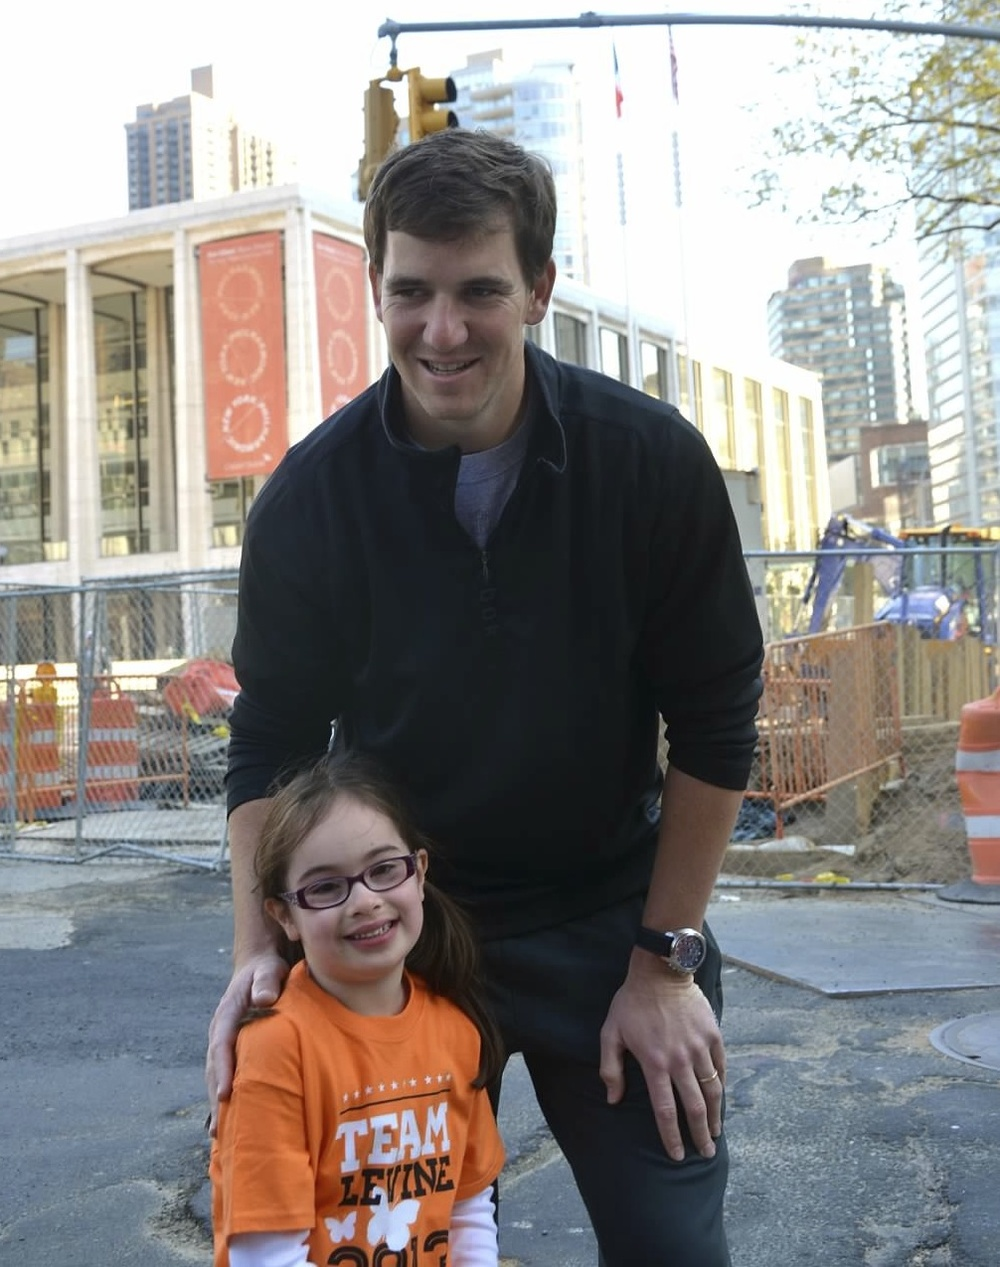 olivia-levine--eli-manning-at-the-2013-march-for-babies-walk_13096379175_o.jpg